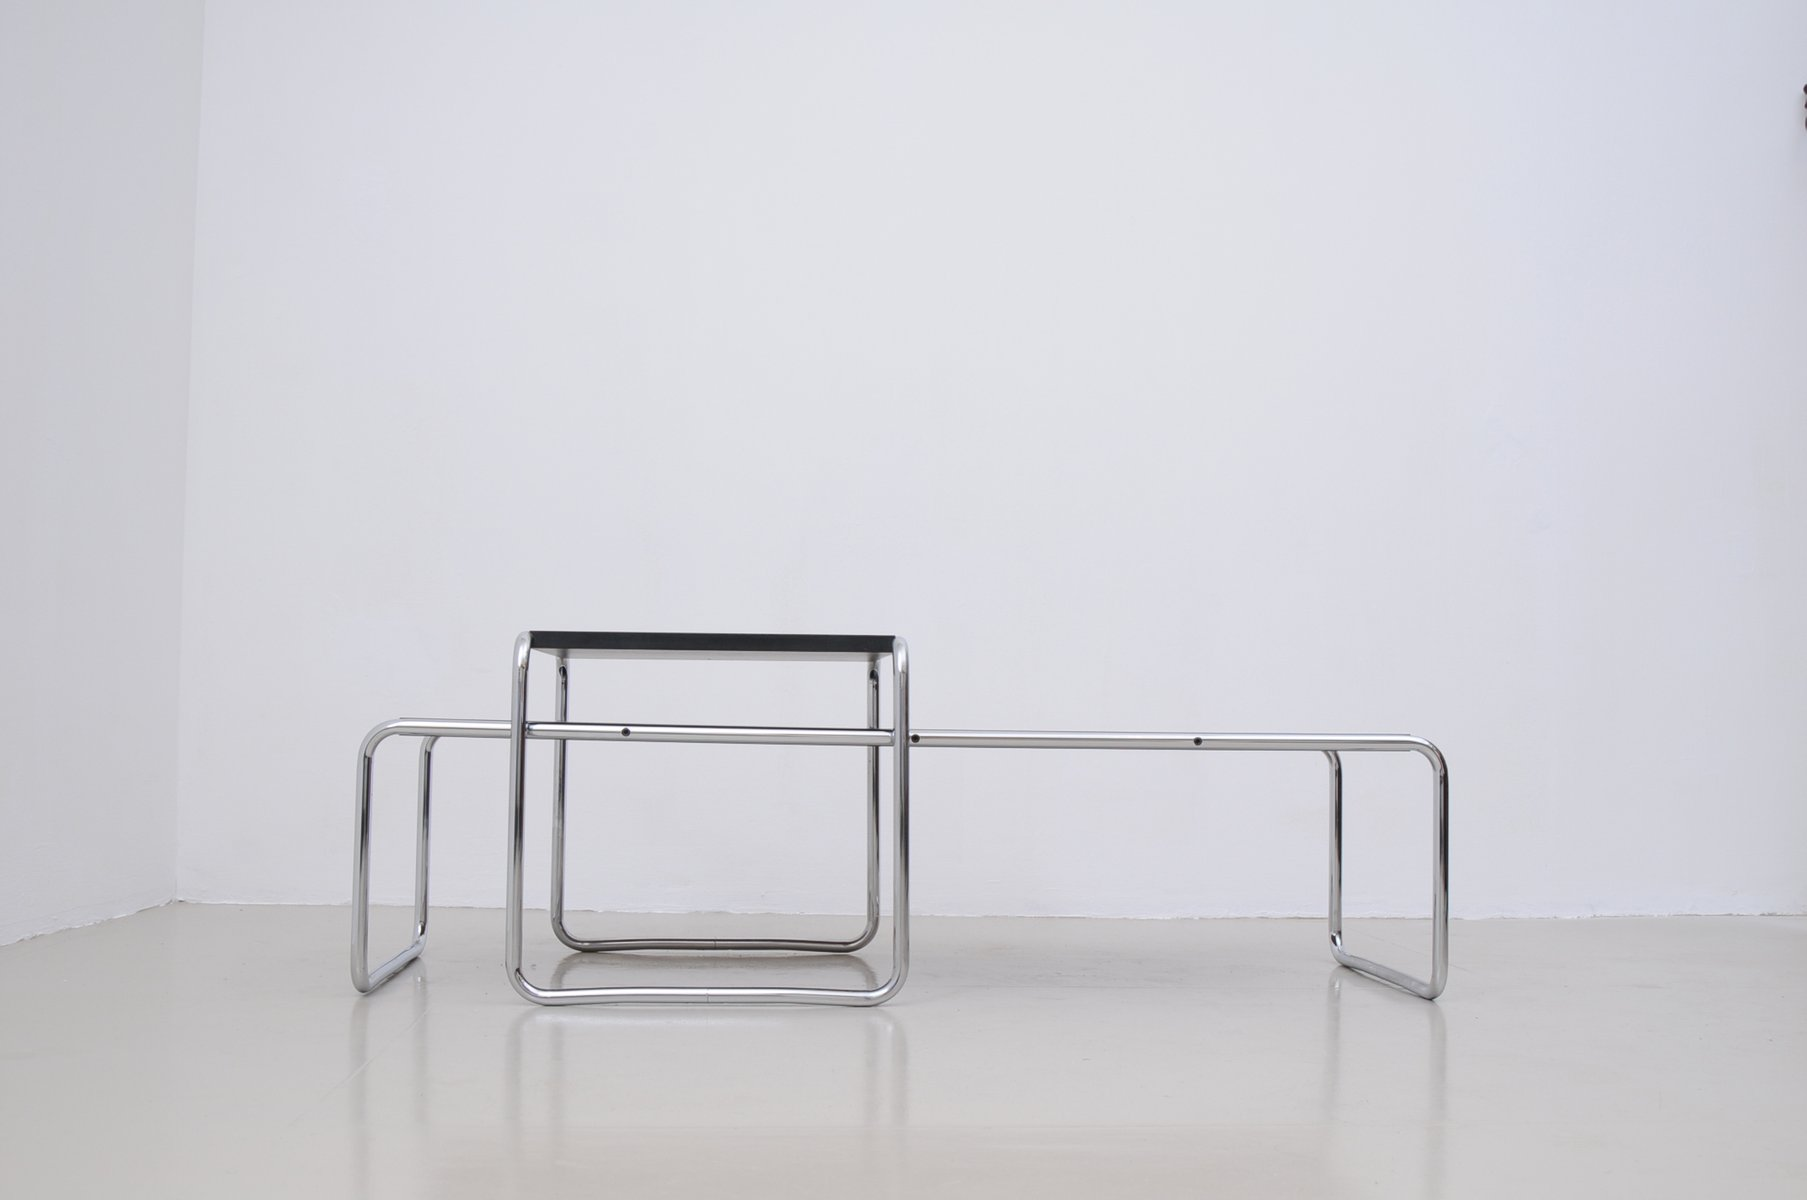 Vintage italian laccio black tables 1 2 by marcel breuer for vintage italian laccio black tables 1 2 by marcel breuer for gavina set of 2 geotapseo Images